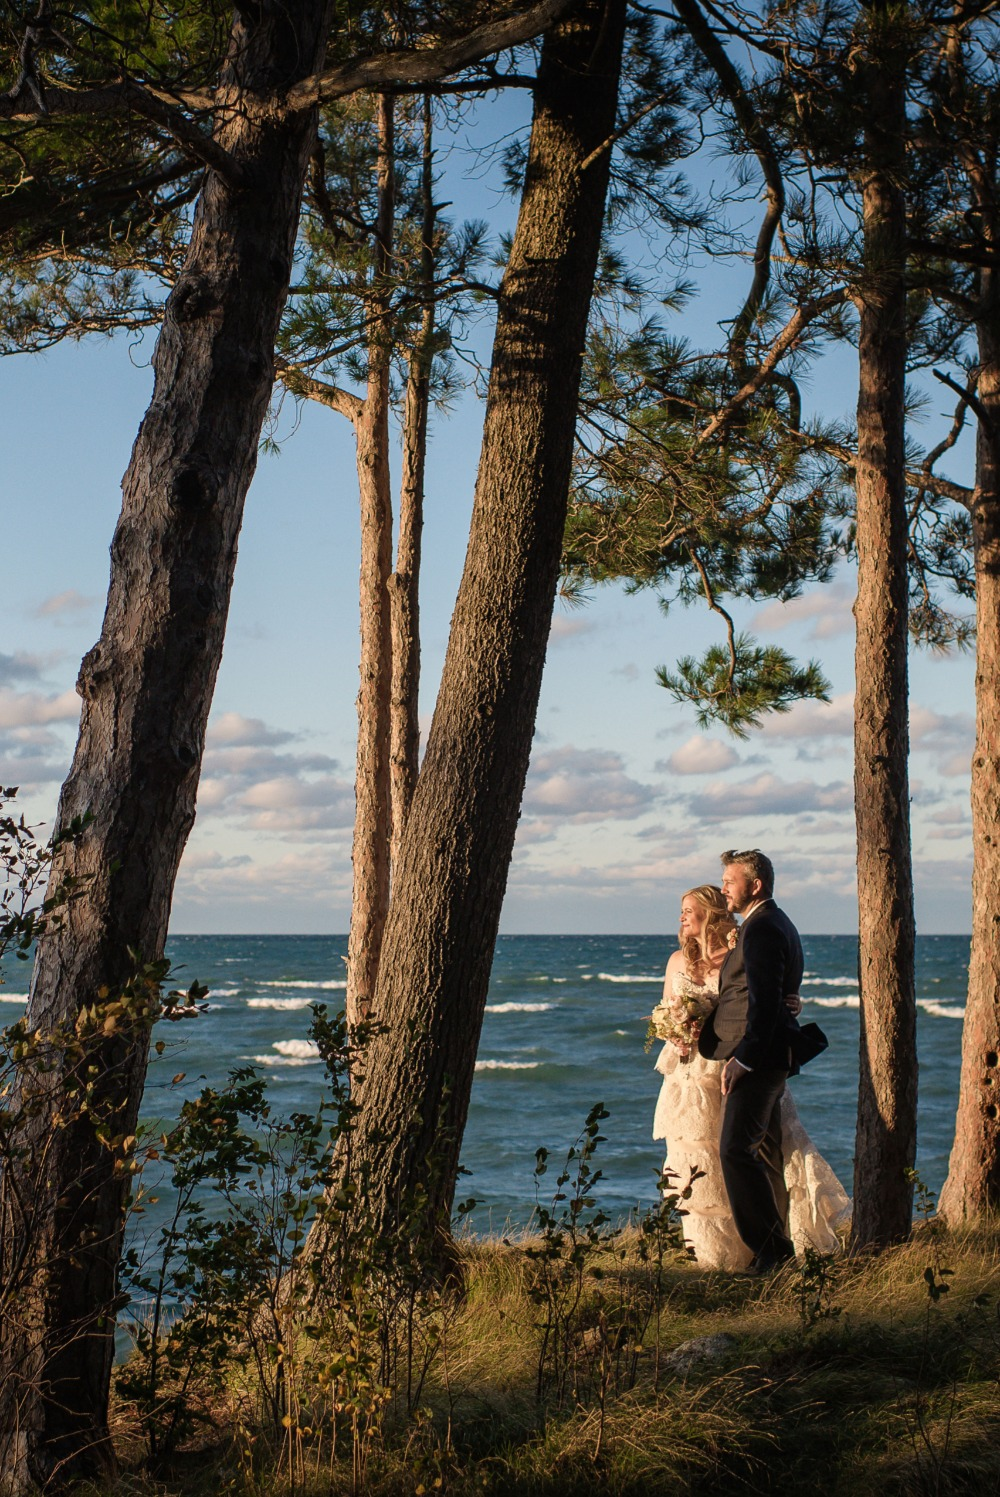 Romantic outdoor wedding photo idea